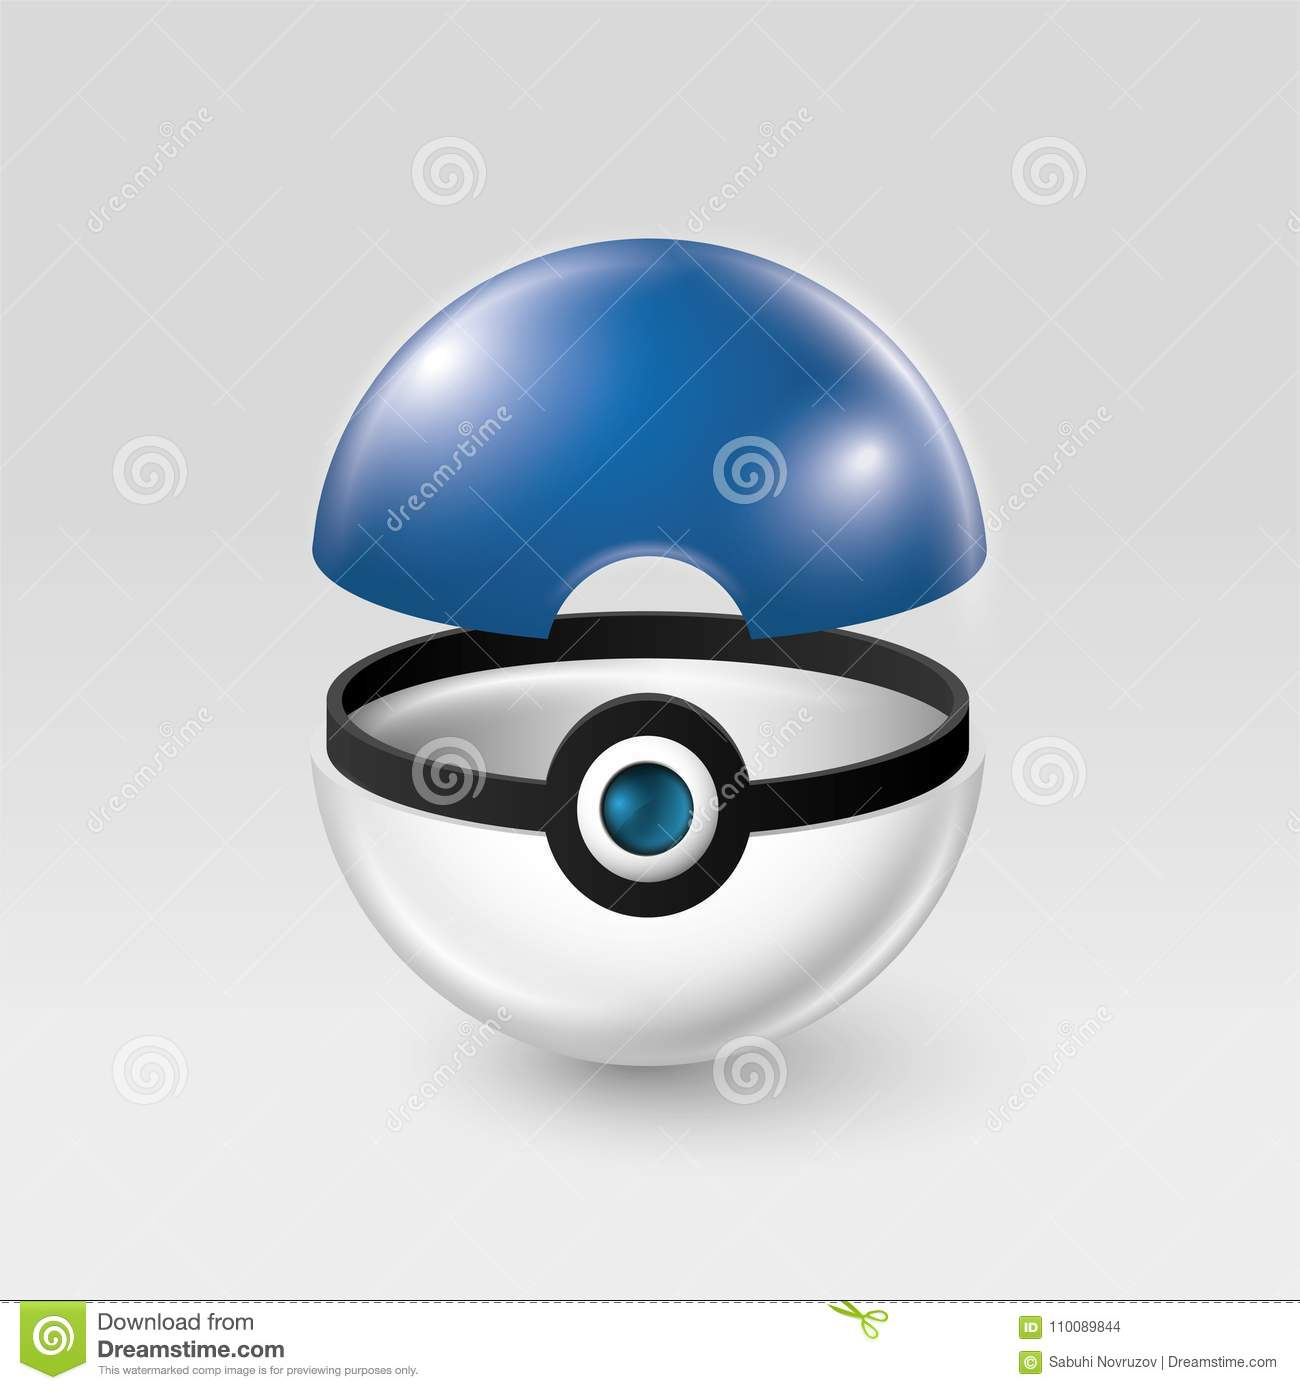 Poke Ball In Blue And White Colors With Point From The Pokemon Go Incubator That Will Hatch Into A